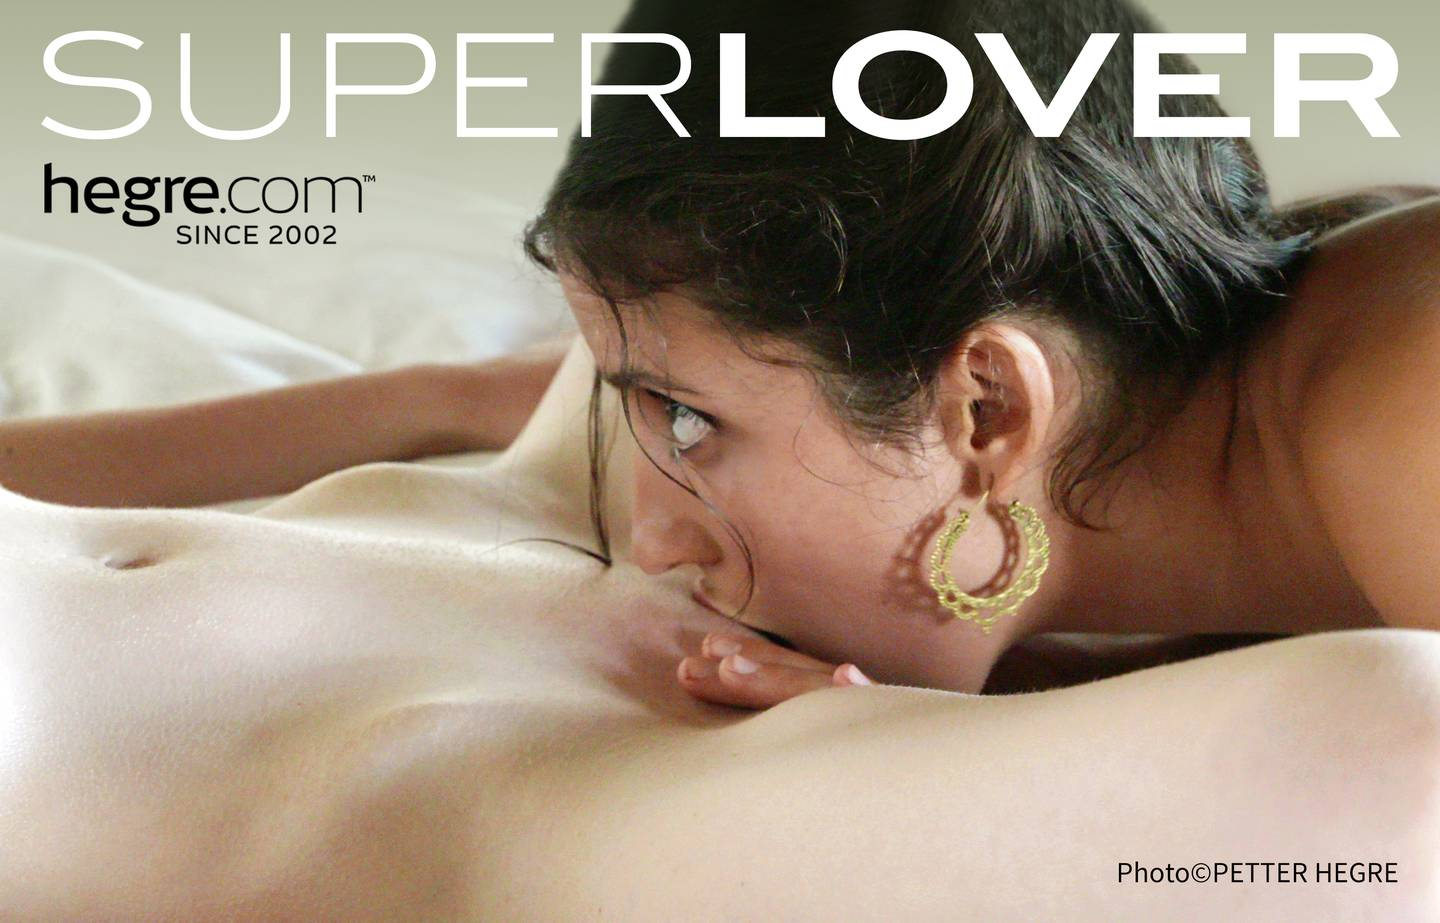 super-lover-was-your-mouth-designed-for-this-cover-image-1440x